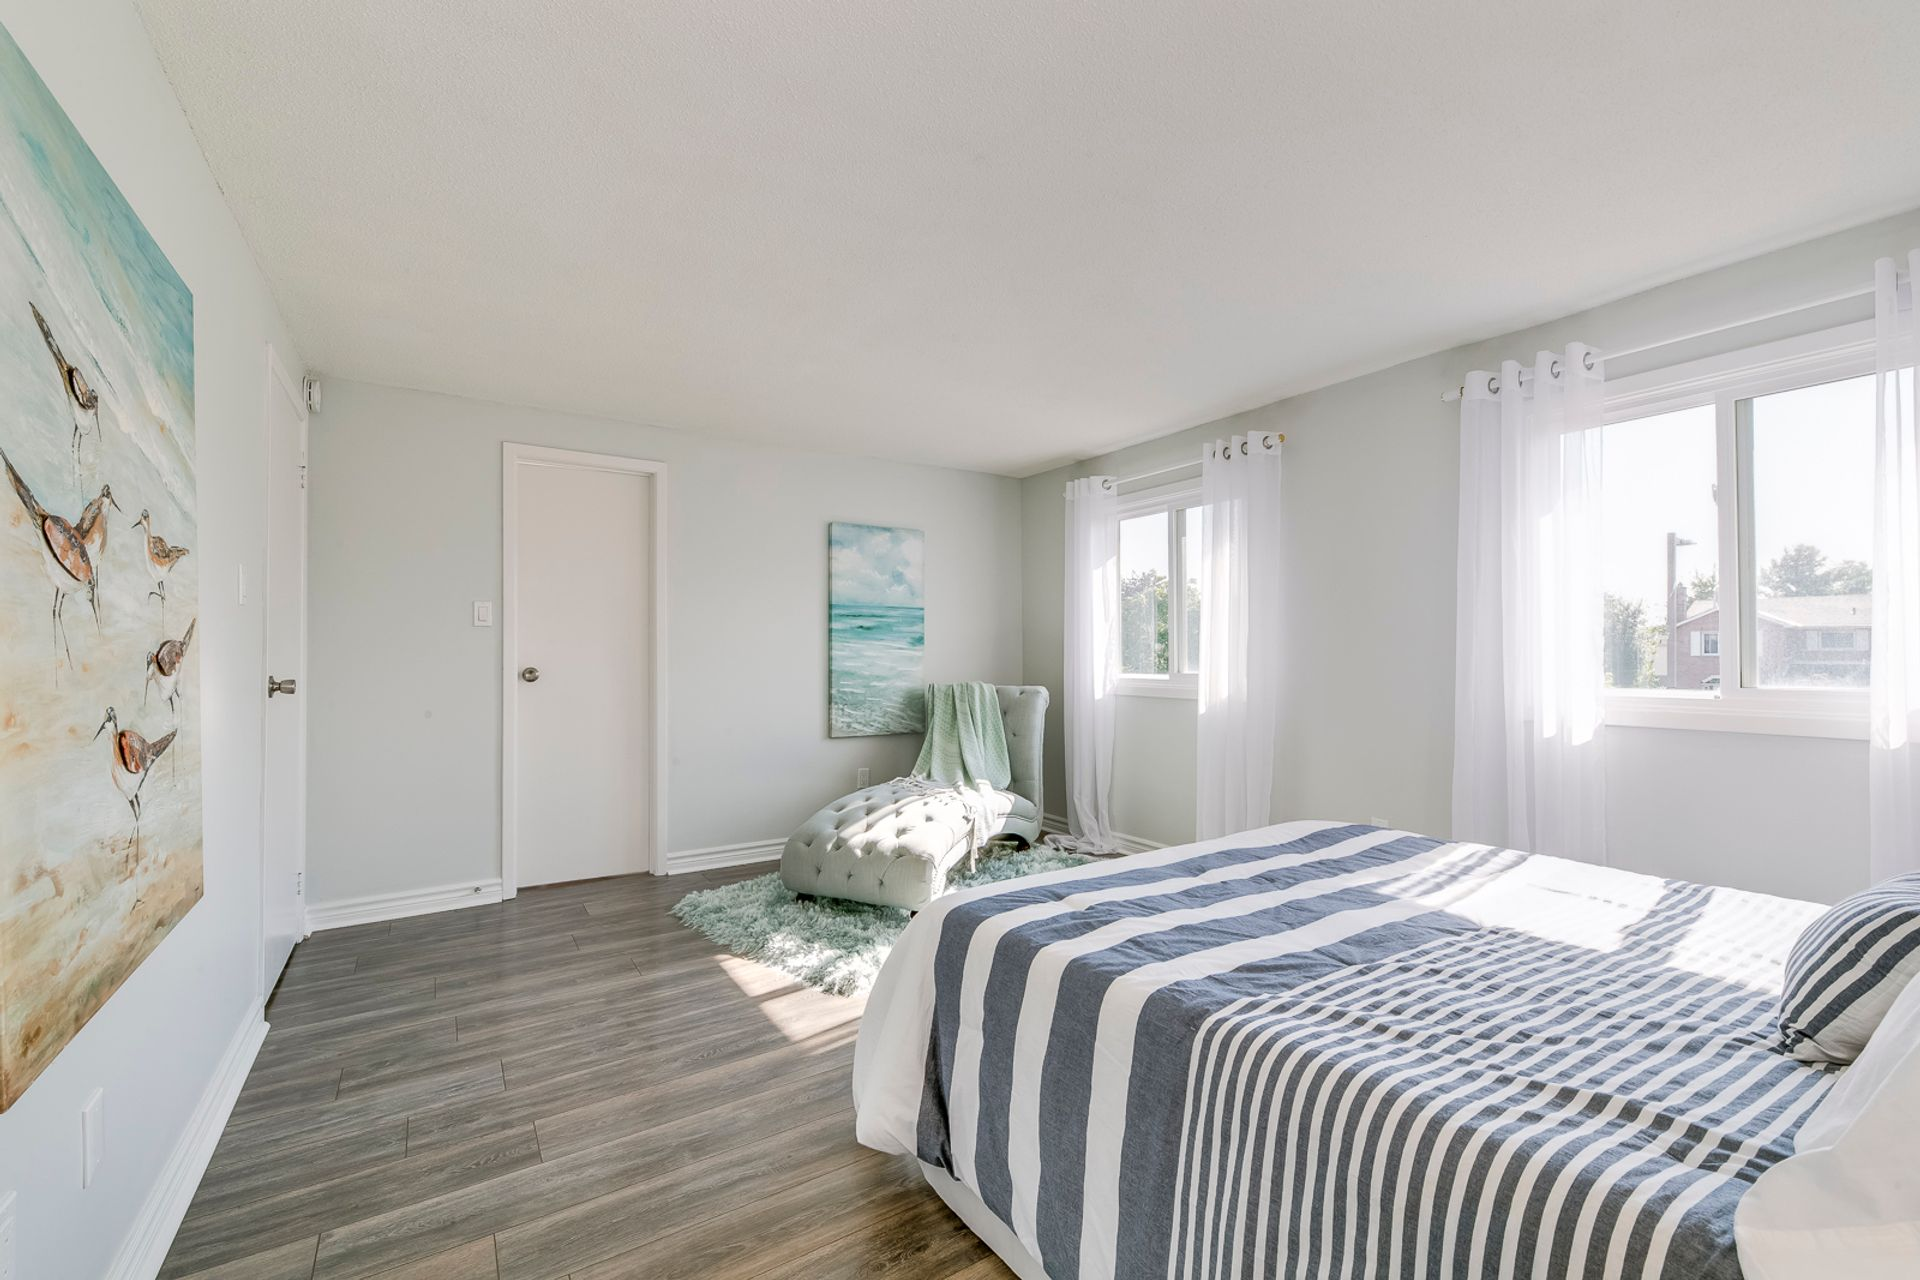 Primary Bedroom - 6278 Lavery Crt, Mississauga - Elite3 & Team at 6278 Lavery Court, Meadowvale, Mississauga